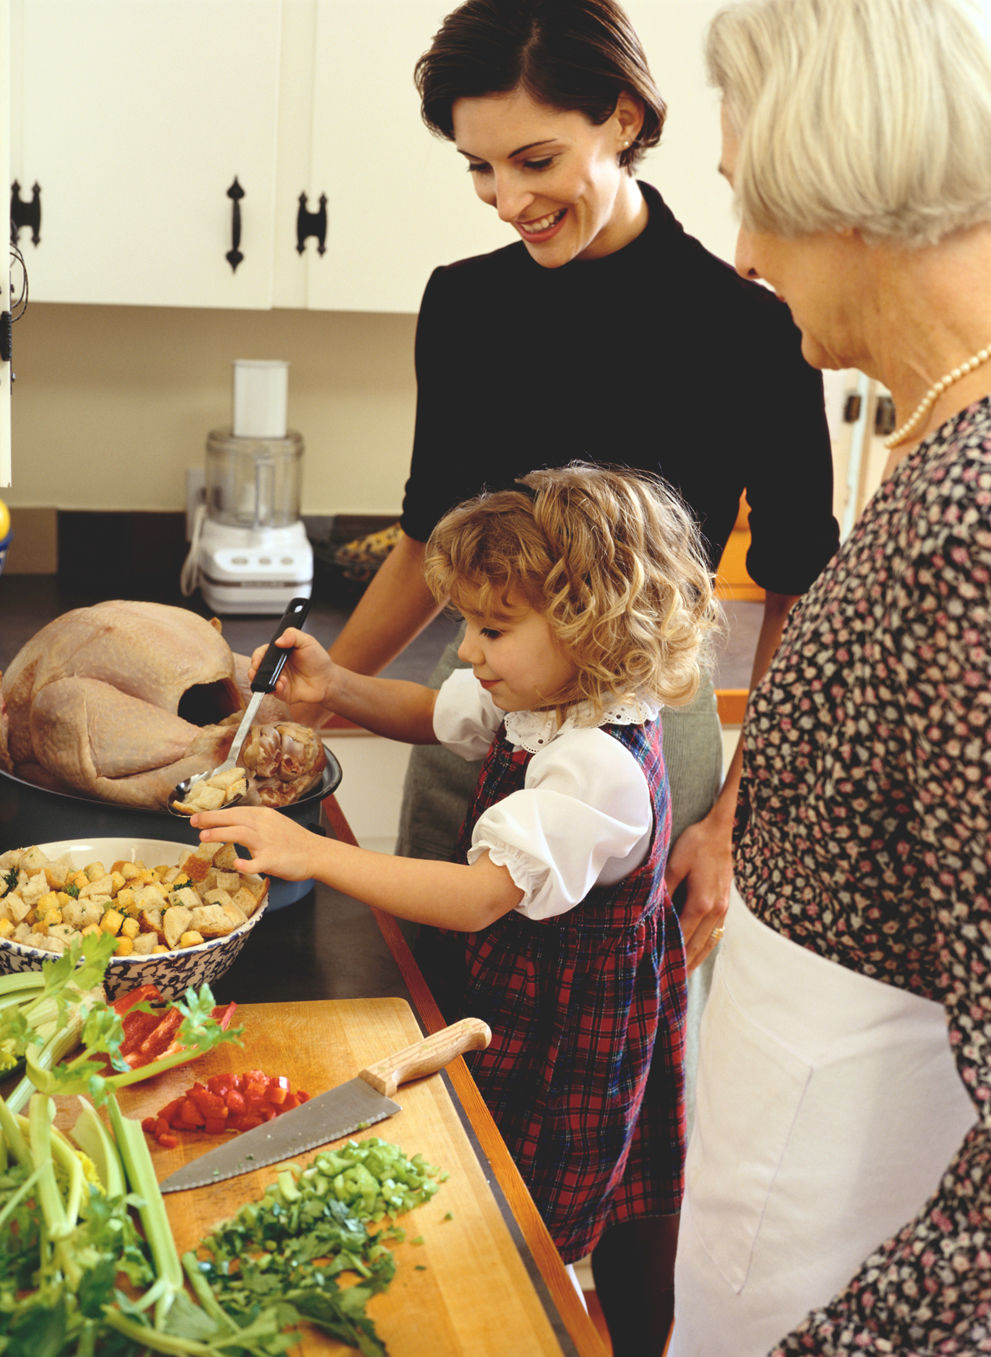 Food safety experts talk proper preparation, storage during the holidays